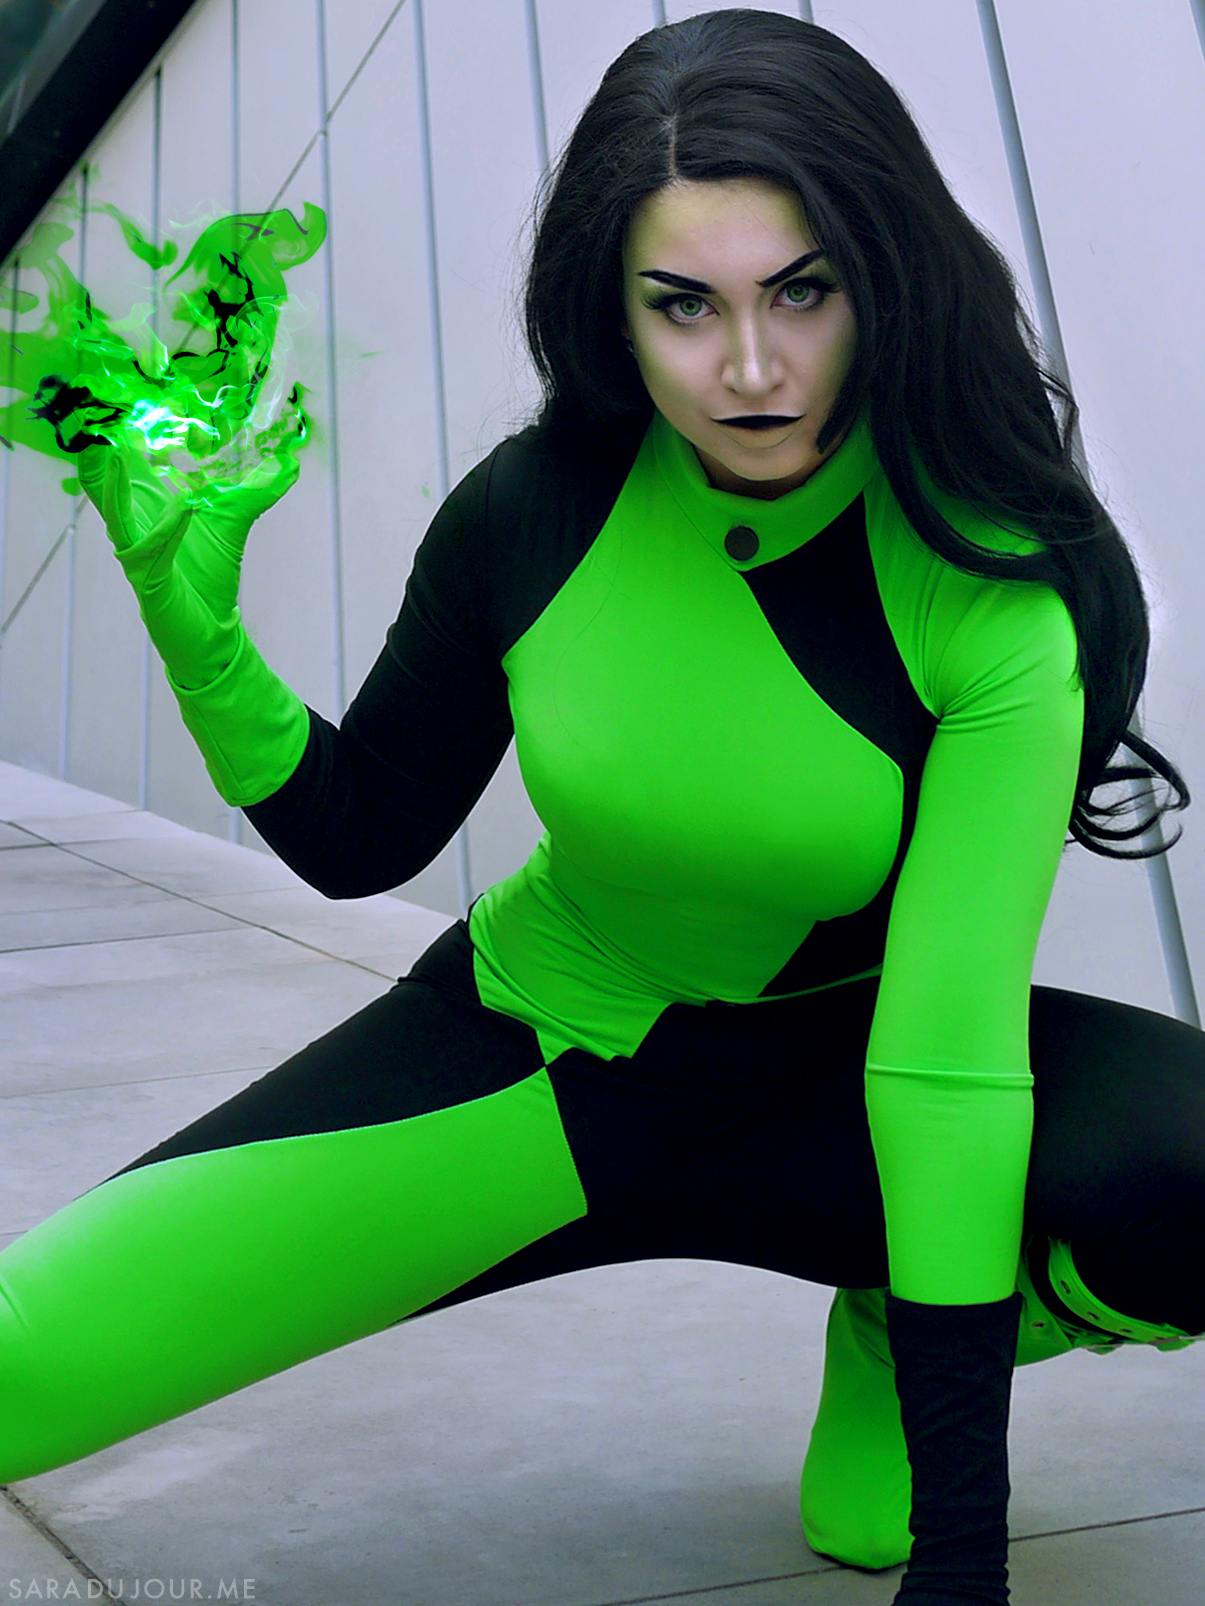 Shego Cosplay Makeup - Kim Possible | Sara du Jour